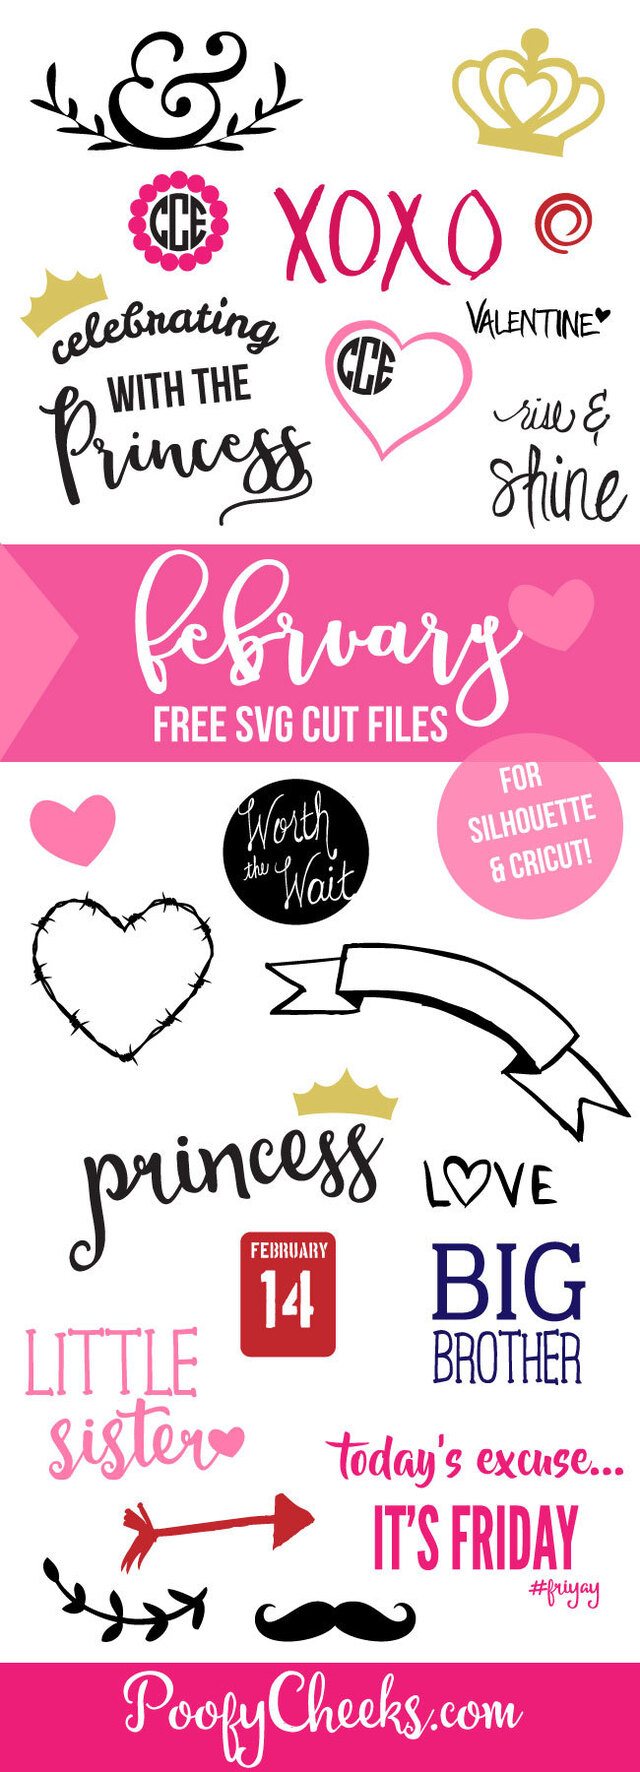 FREE Cut Files for February - SVG and DXF for Silhouette and Cameo